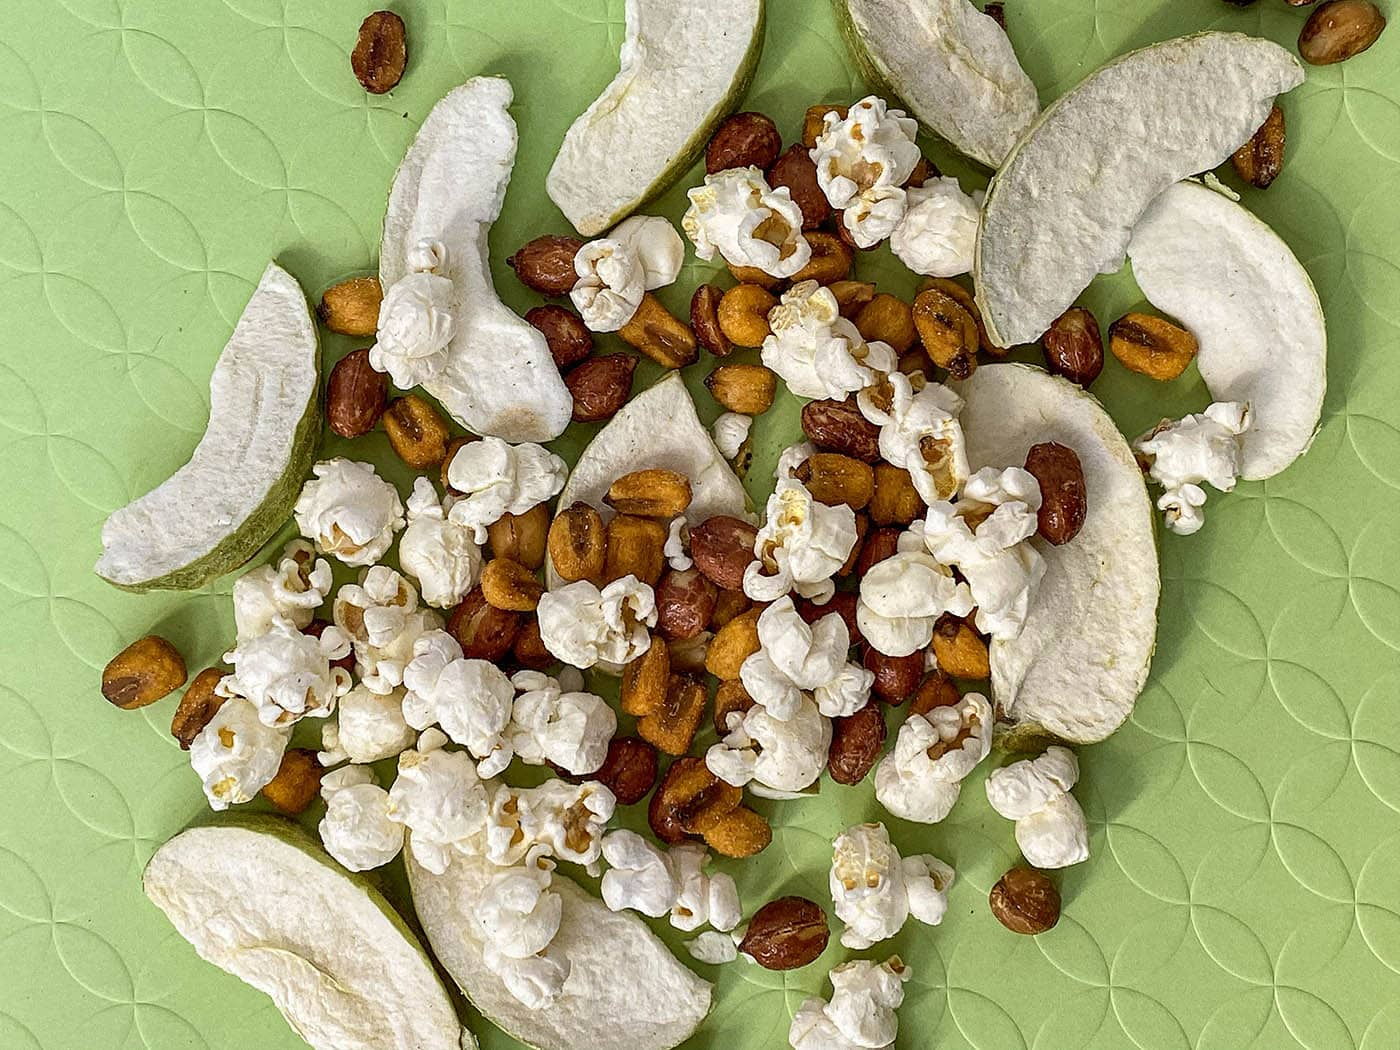 What Illinois road trip snacks should you pack for your road trip and what's in an Illinois snack mix recipe? Try these official state snacks like popcorn, corn, beer nuts, and apples.